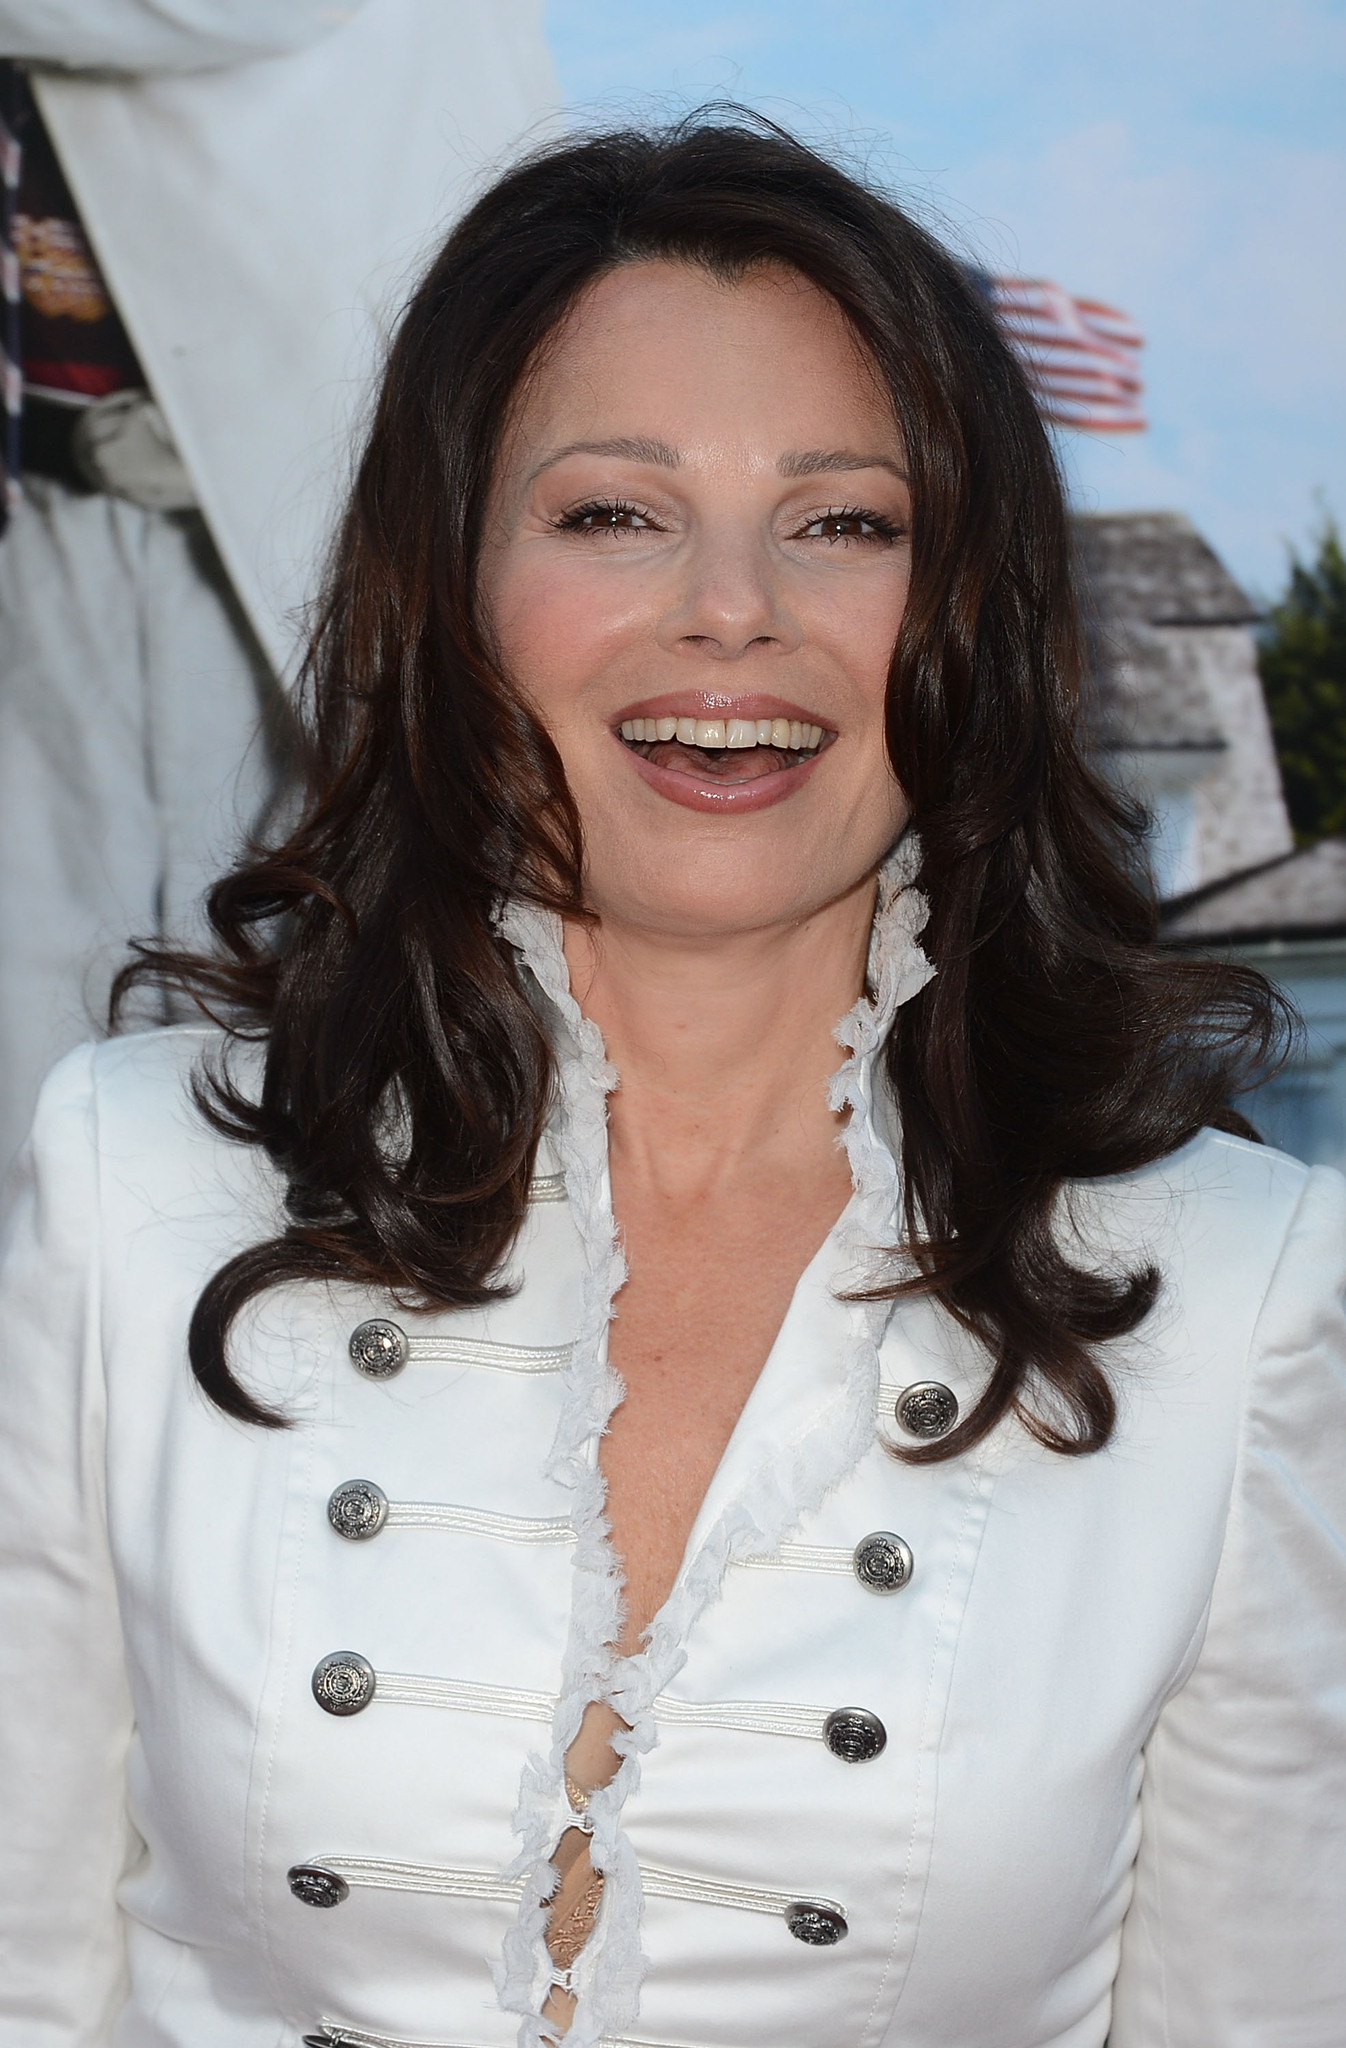 Fran Drescher at an event for That's My Boy (2012)